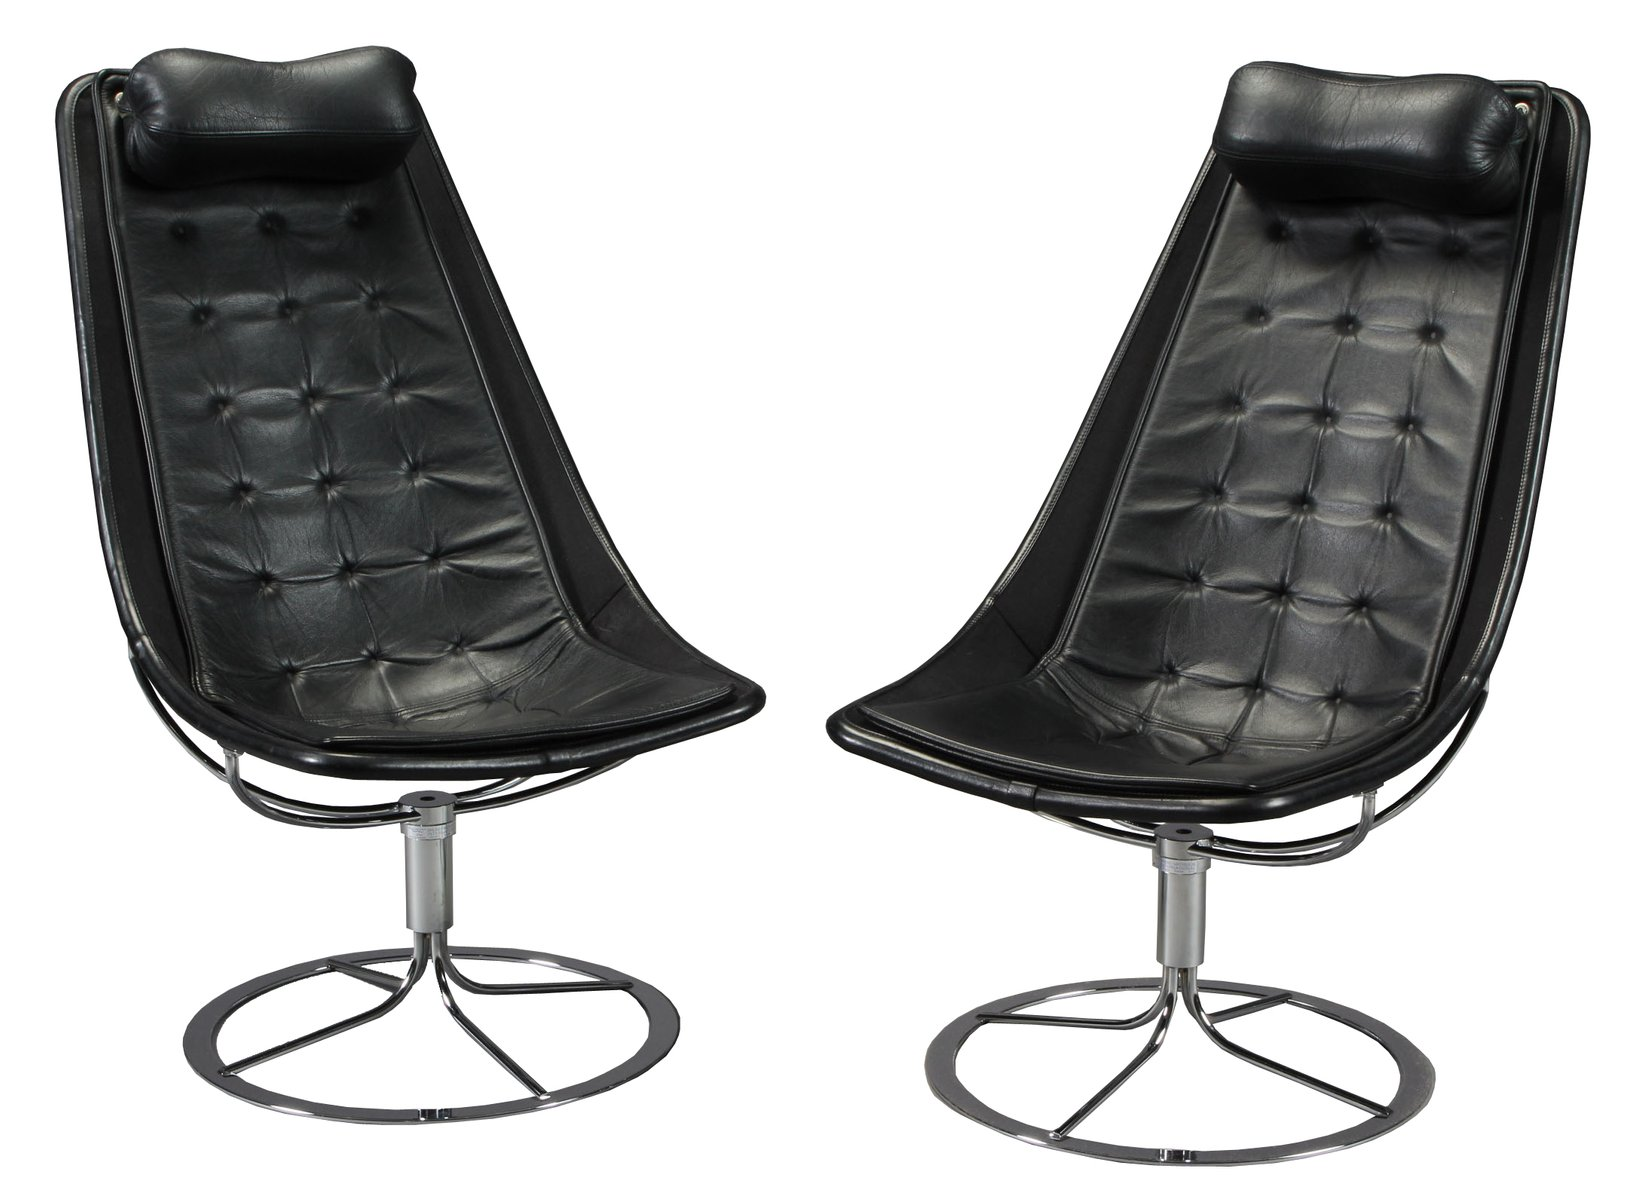 Jetson 66 Lounge Chair by Bruno Mathsson 1960s for sale at Pamono